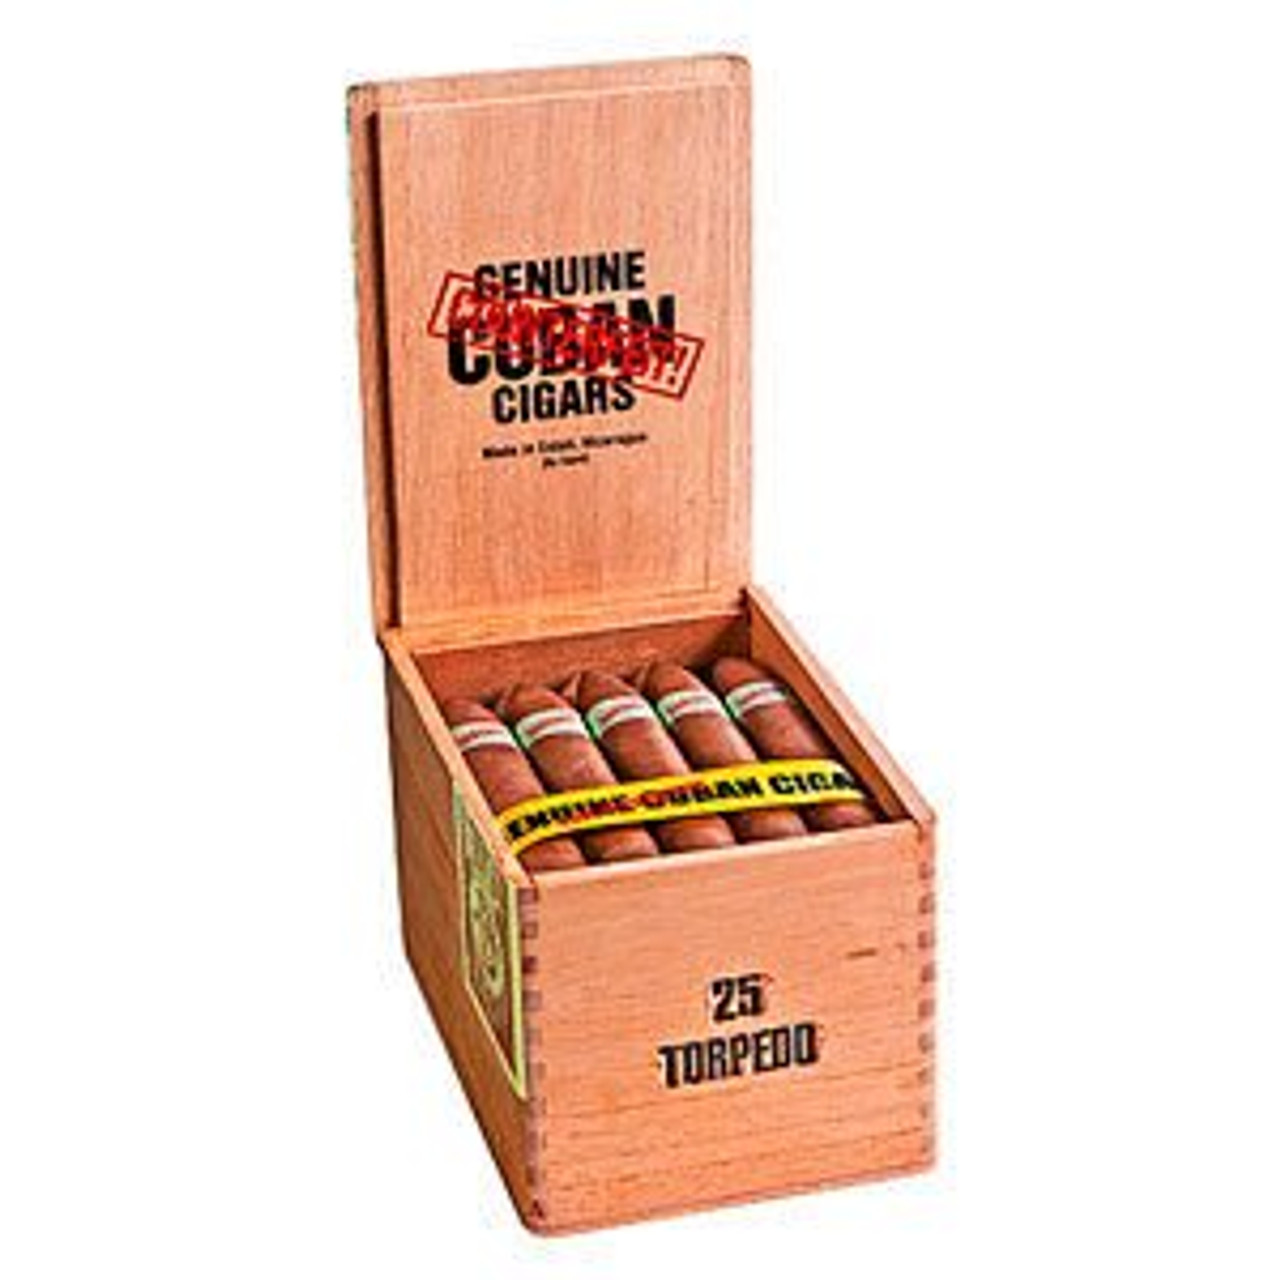 Genuine Counterfeit Cubans Lonsdale Cigars - 6.75 x 42 (Cedar Chest of 25)